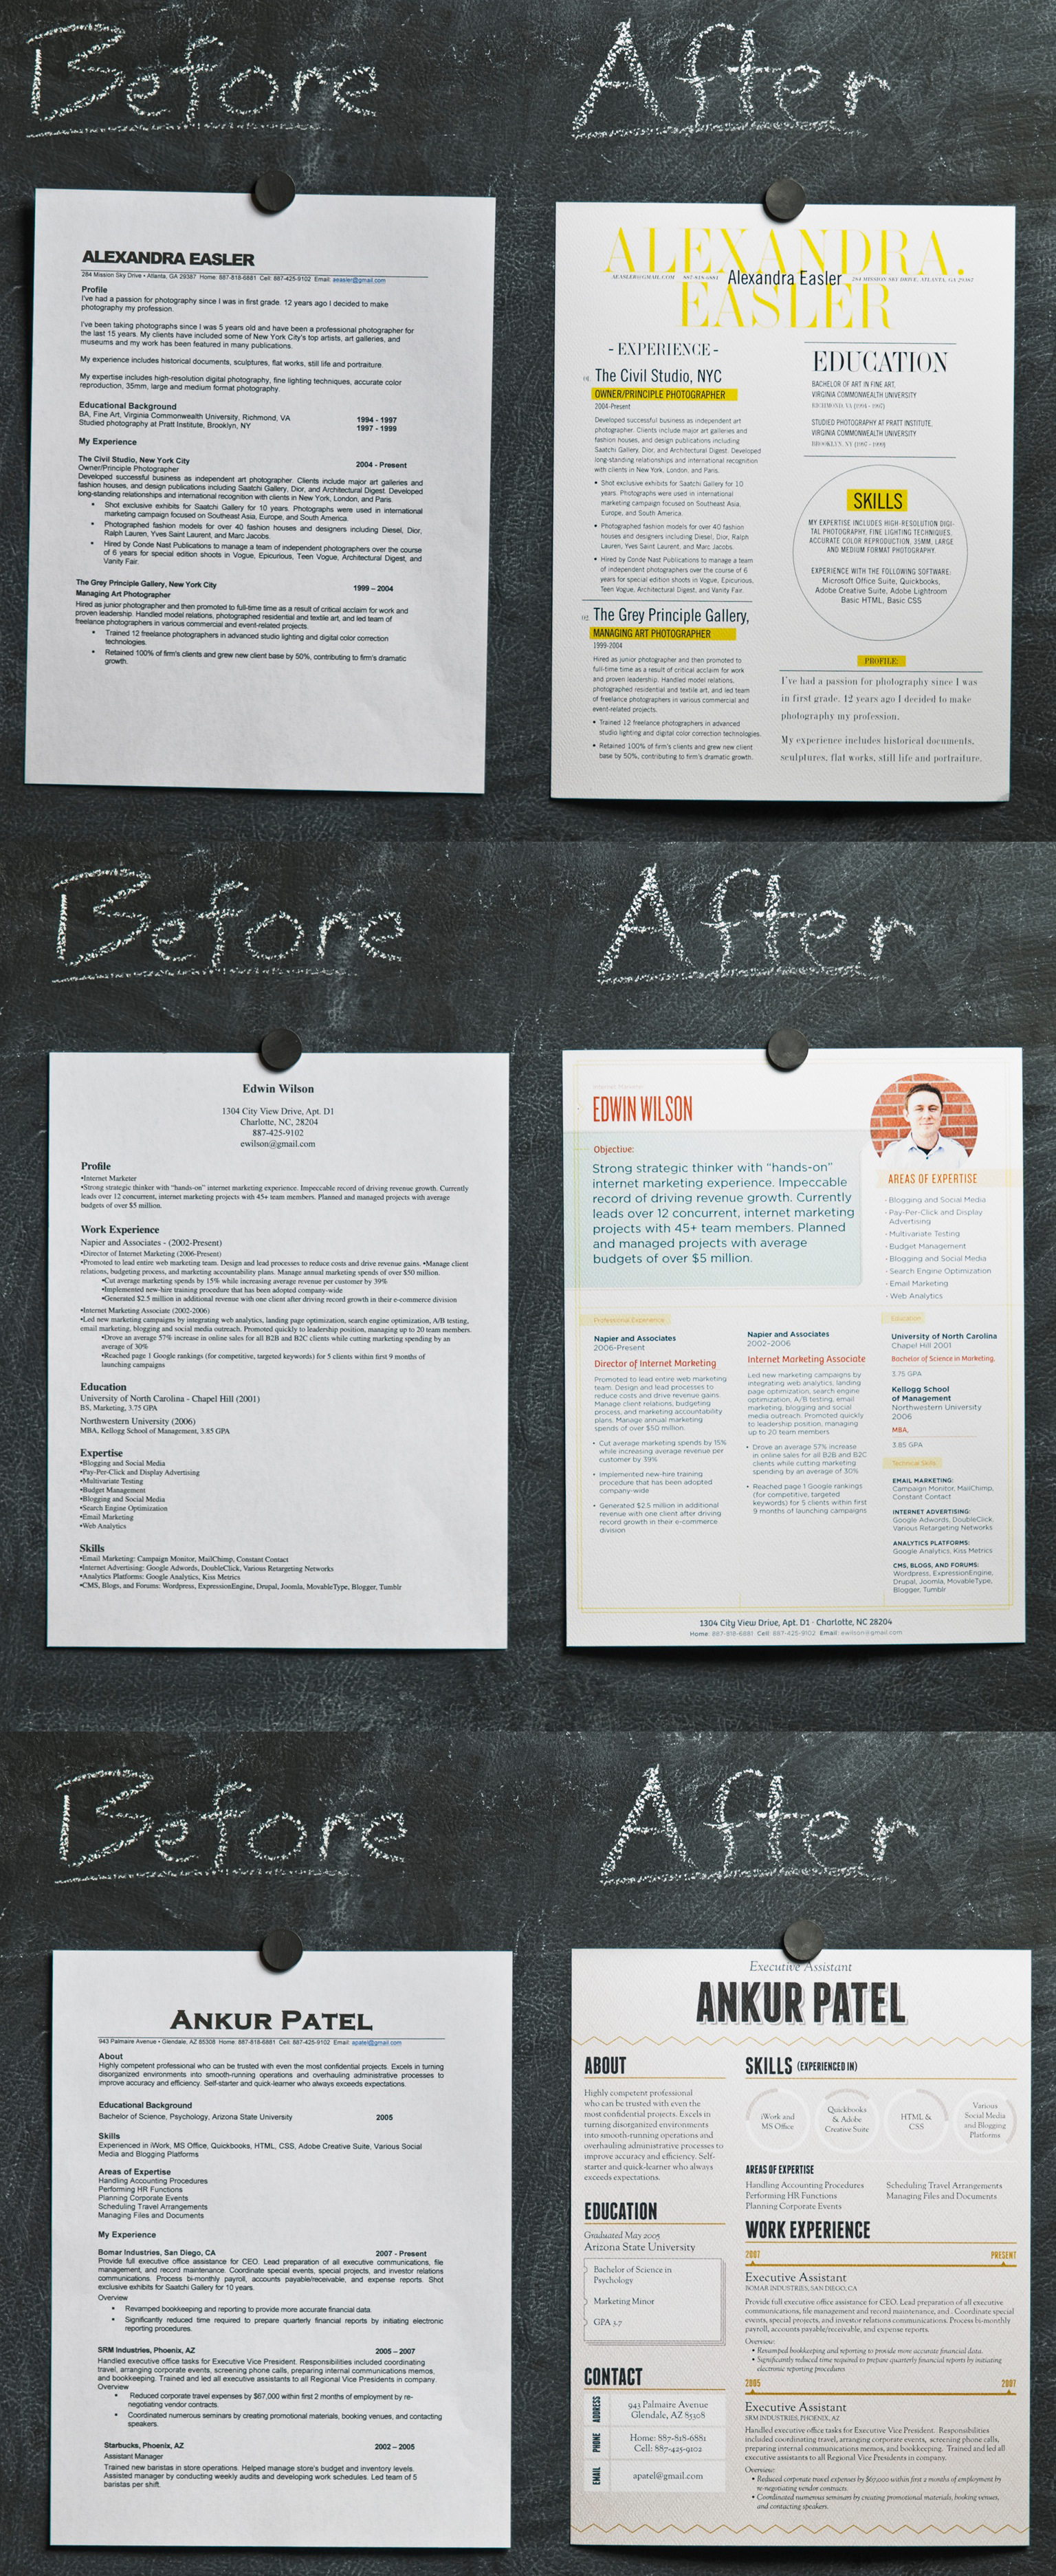 a good design makes a huge difference here are some tips to make your resume